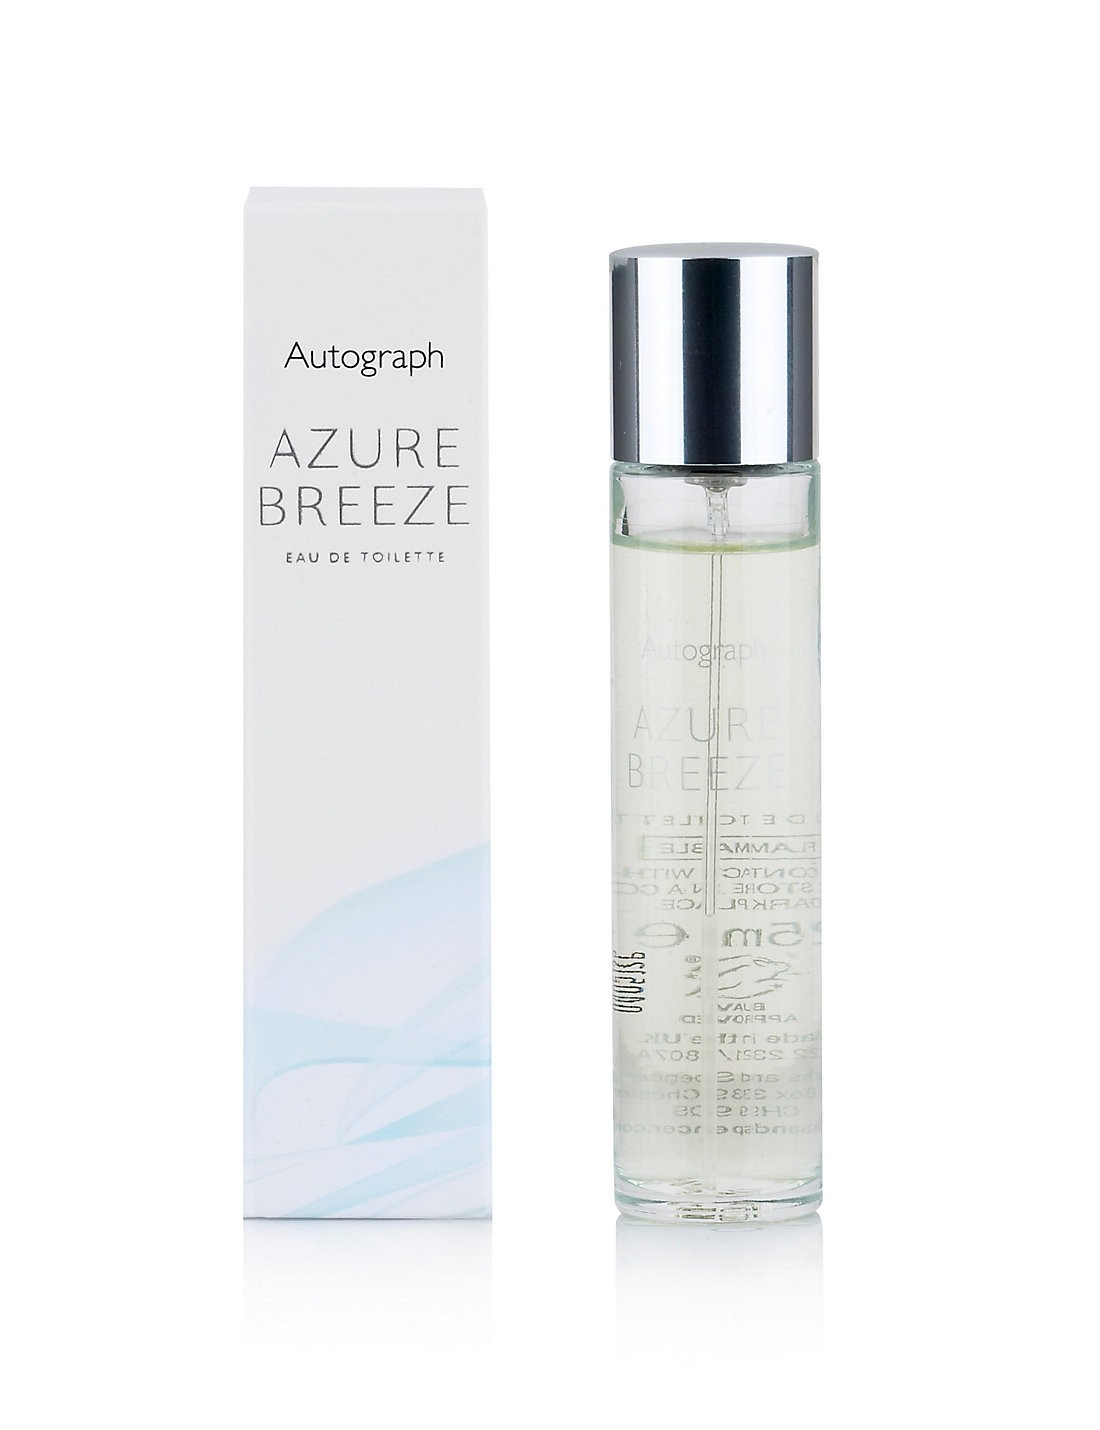 Azure Breeze Eau de Toilette Purse Spray 25ml